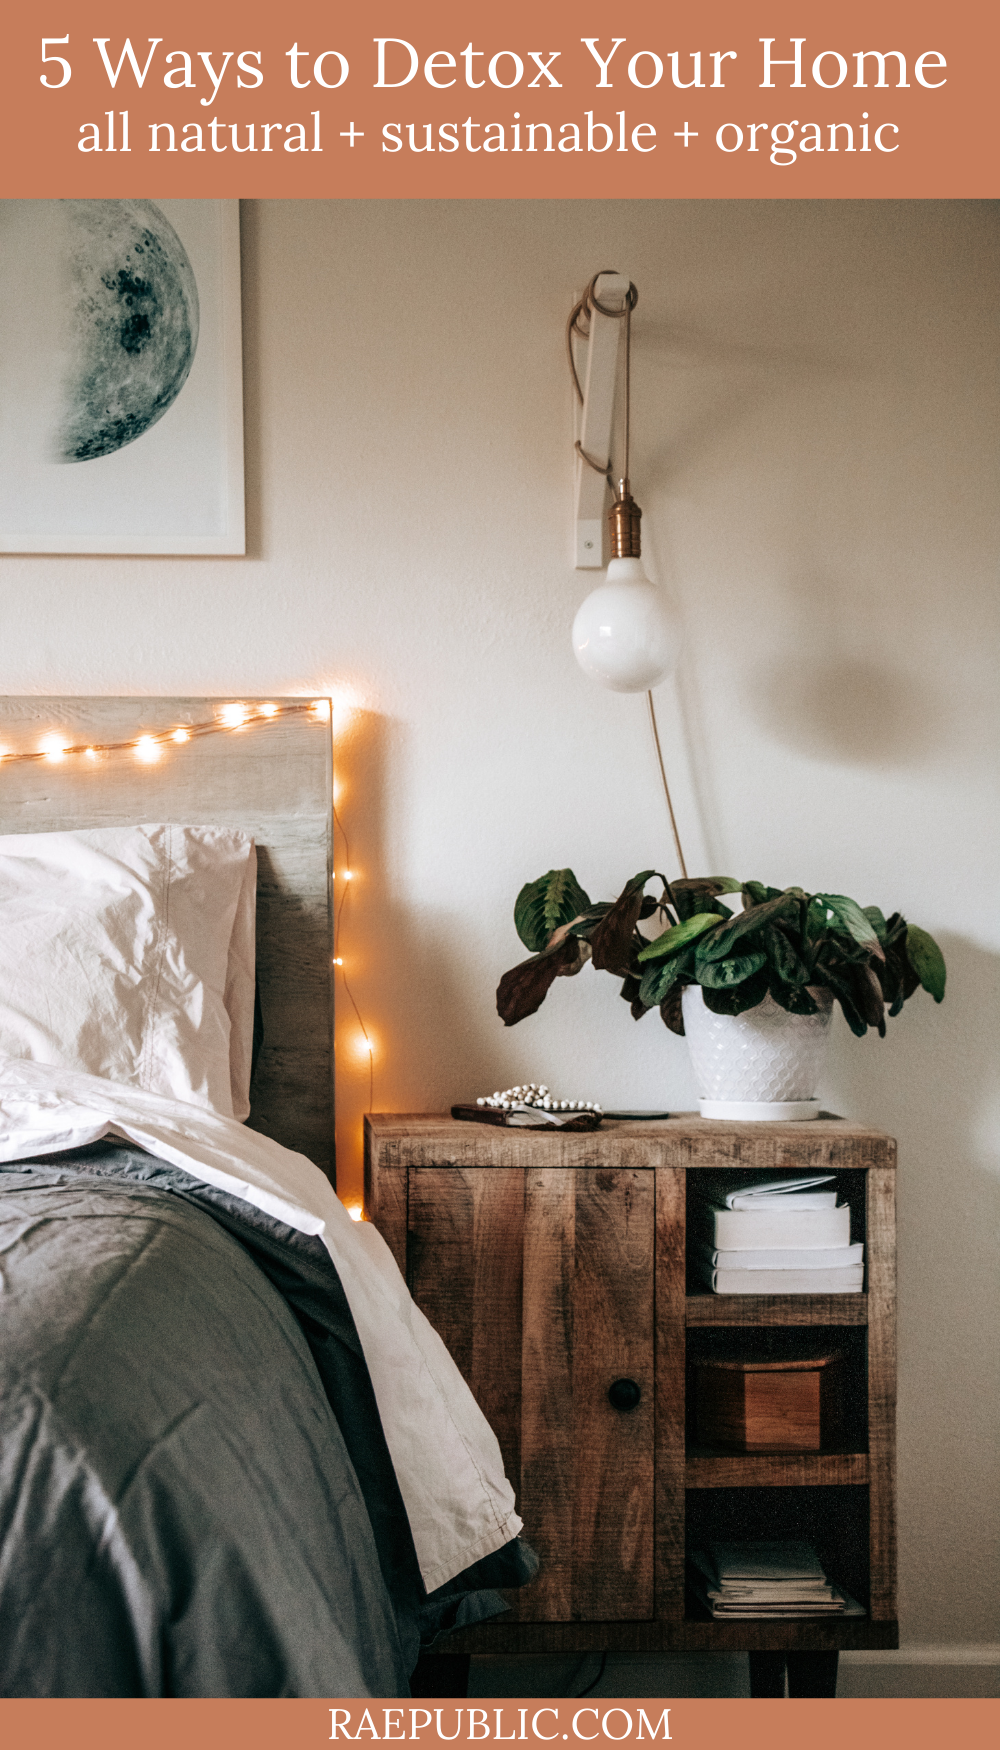 5 ways to detox your home from mattresses to coffee tables as well as house paint.png